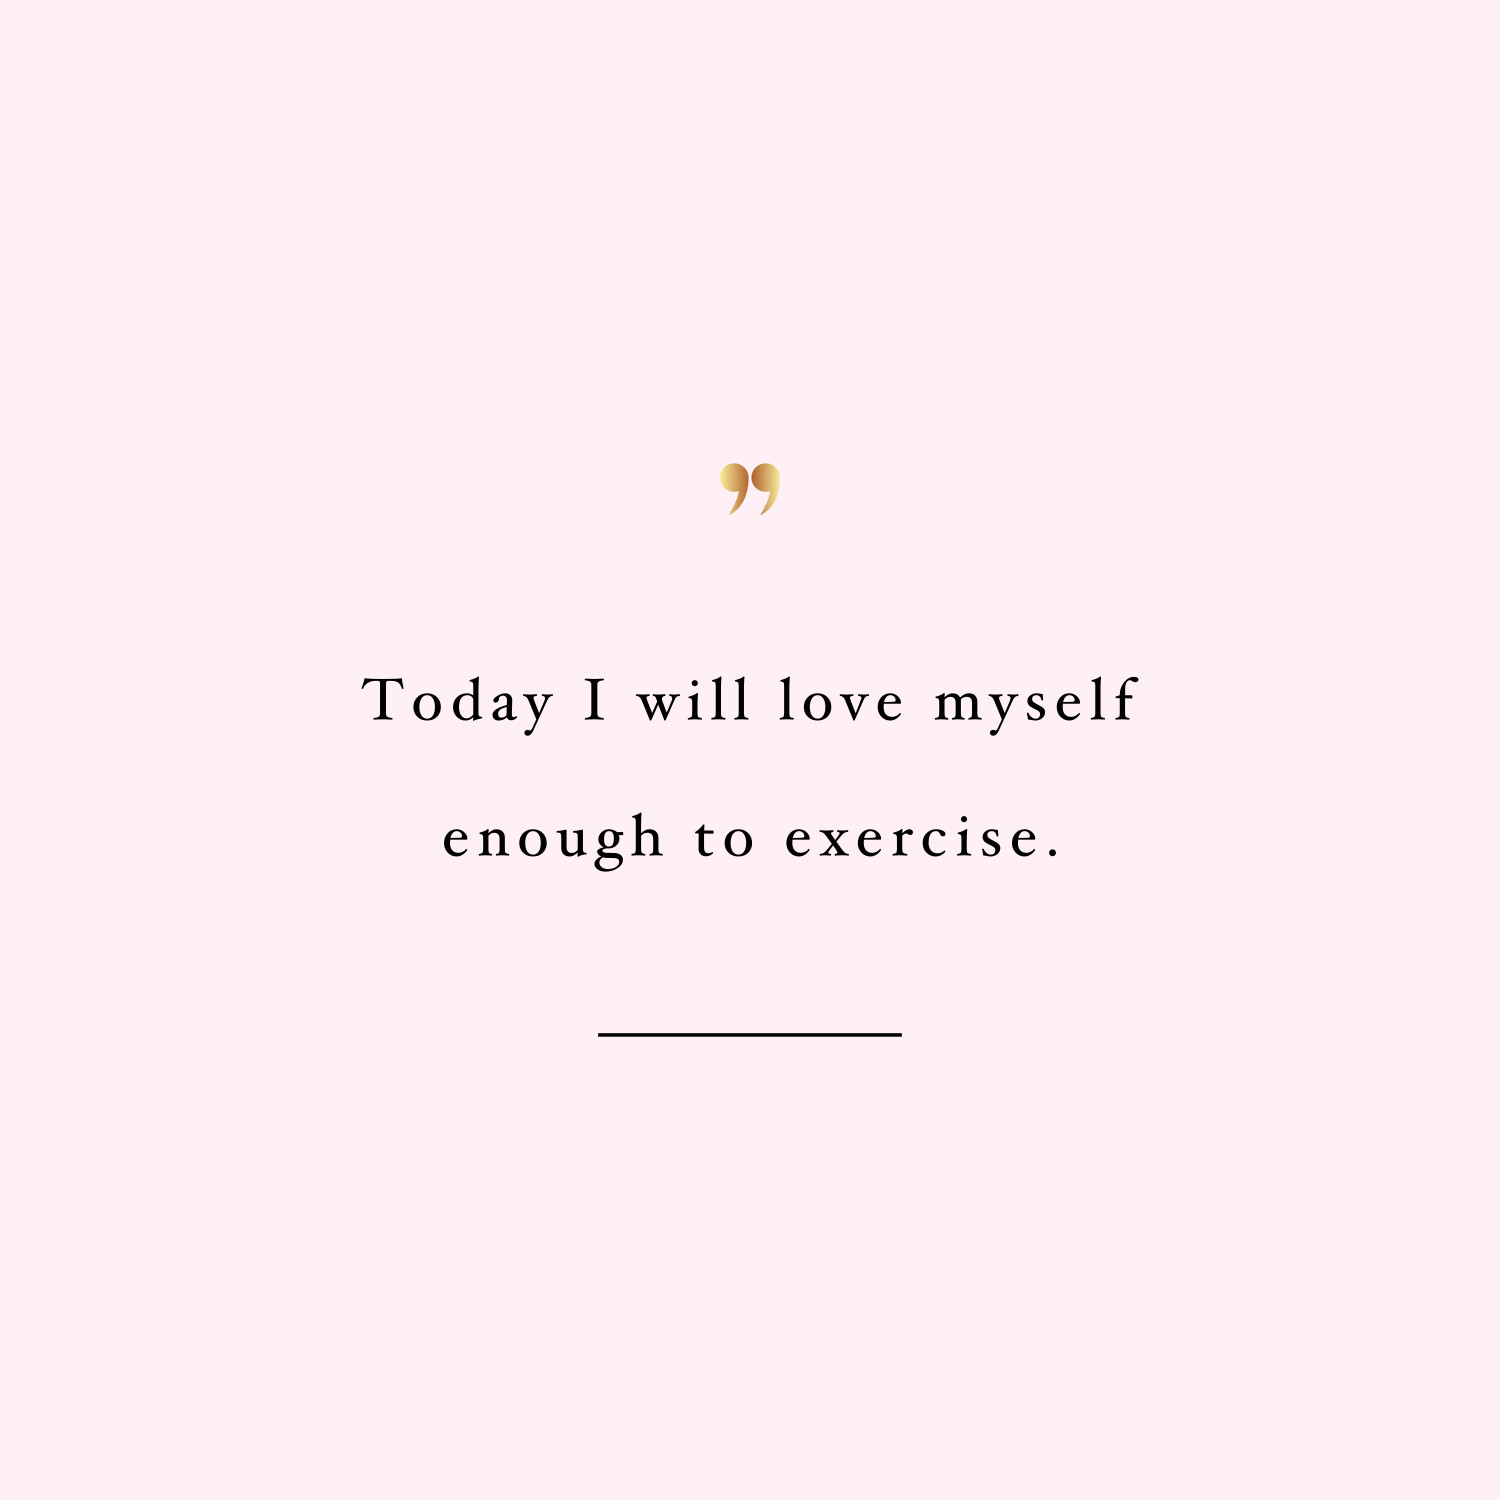 Love Yourself | Exercise Inspiration